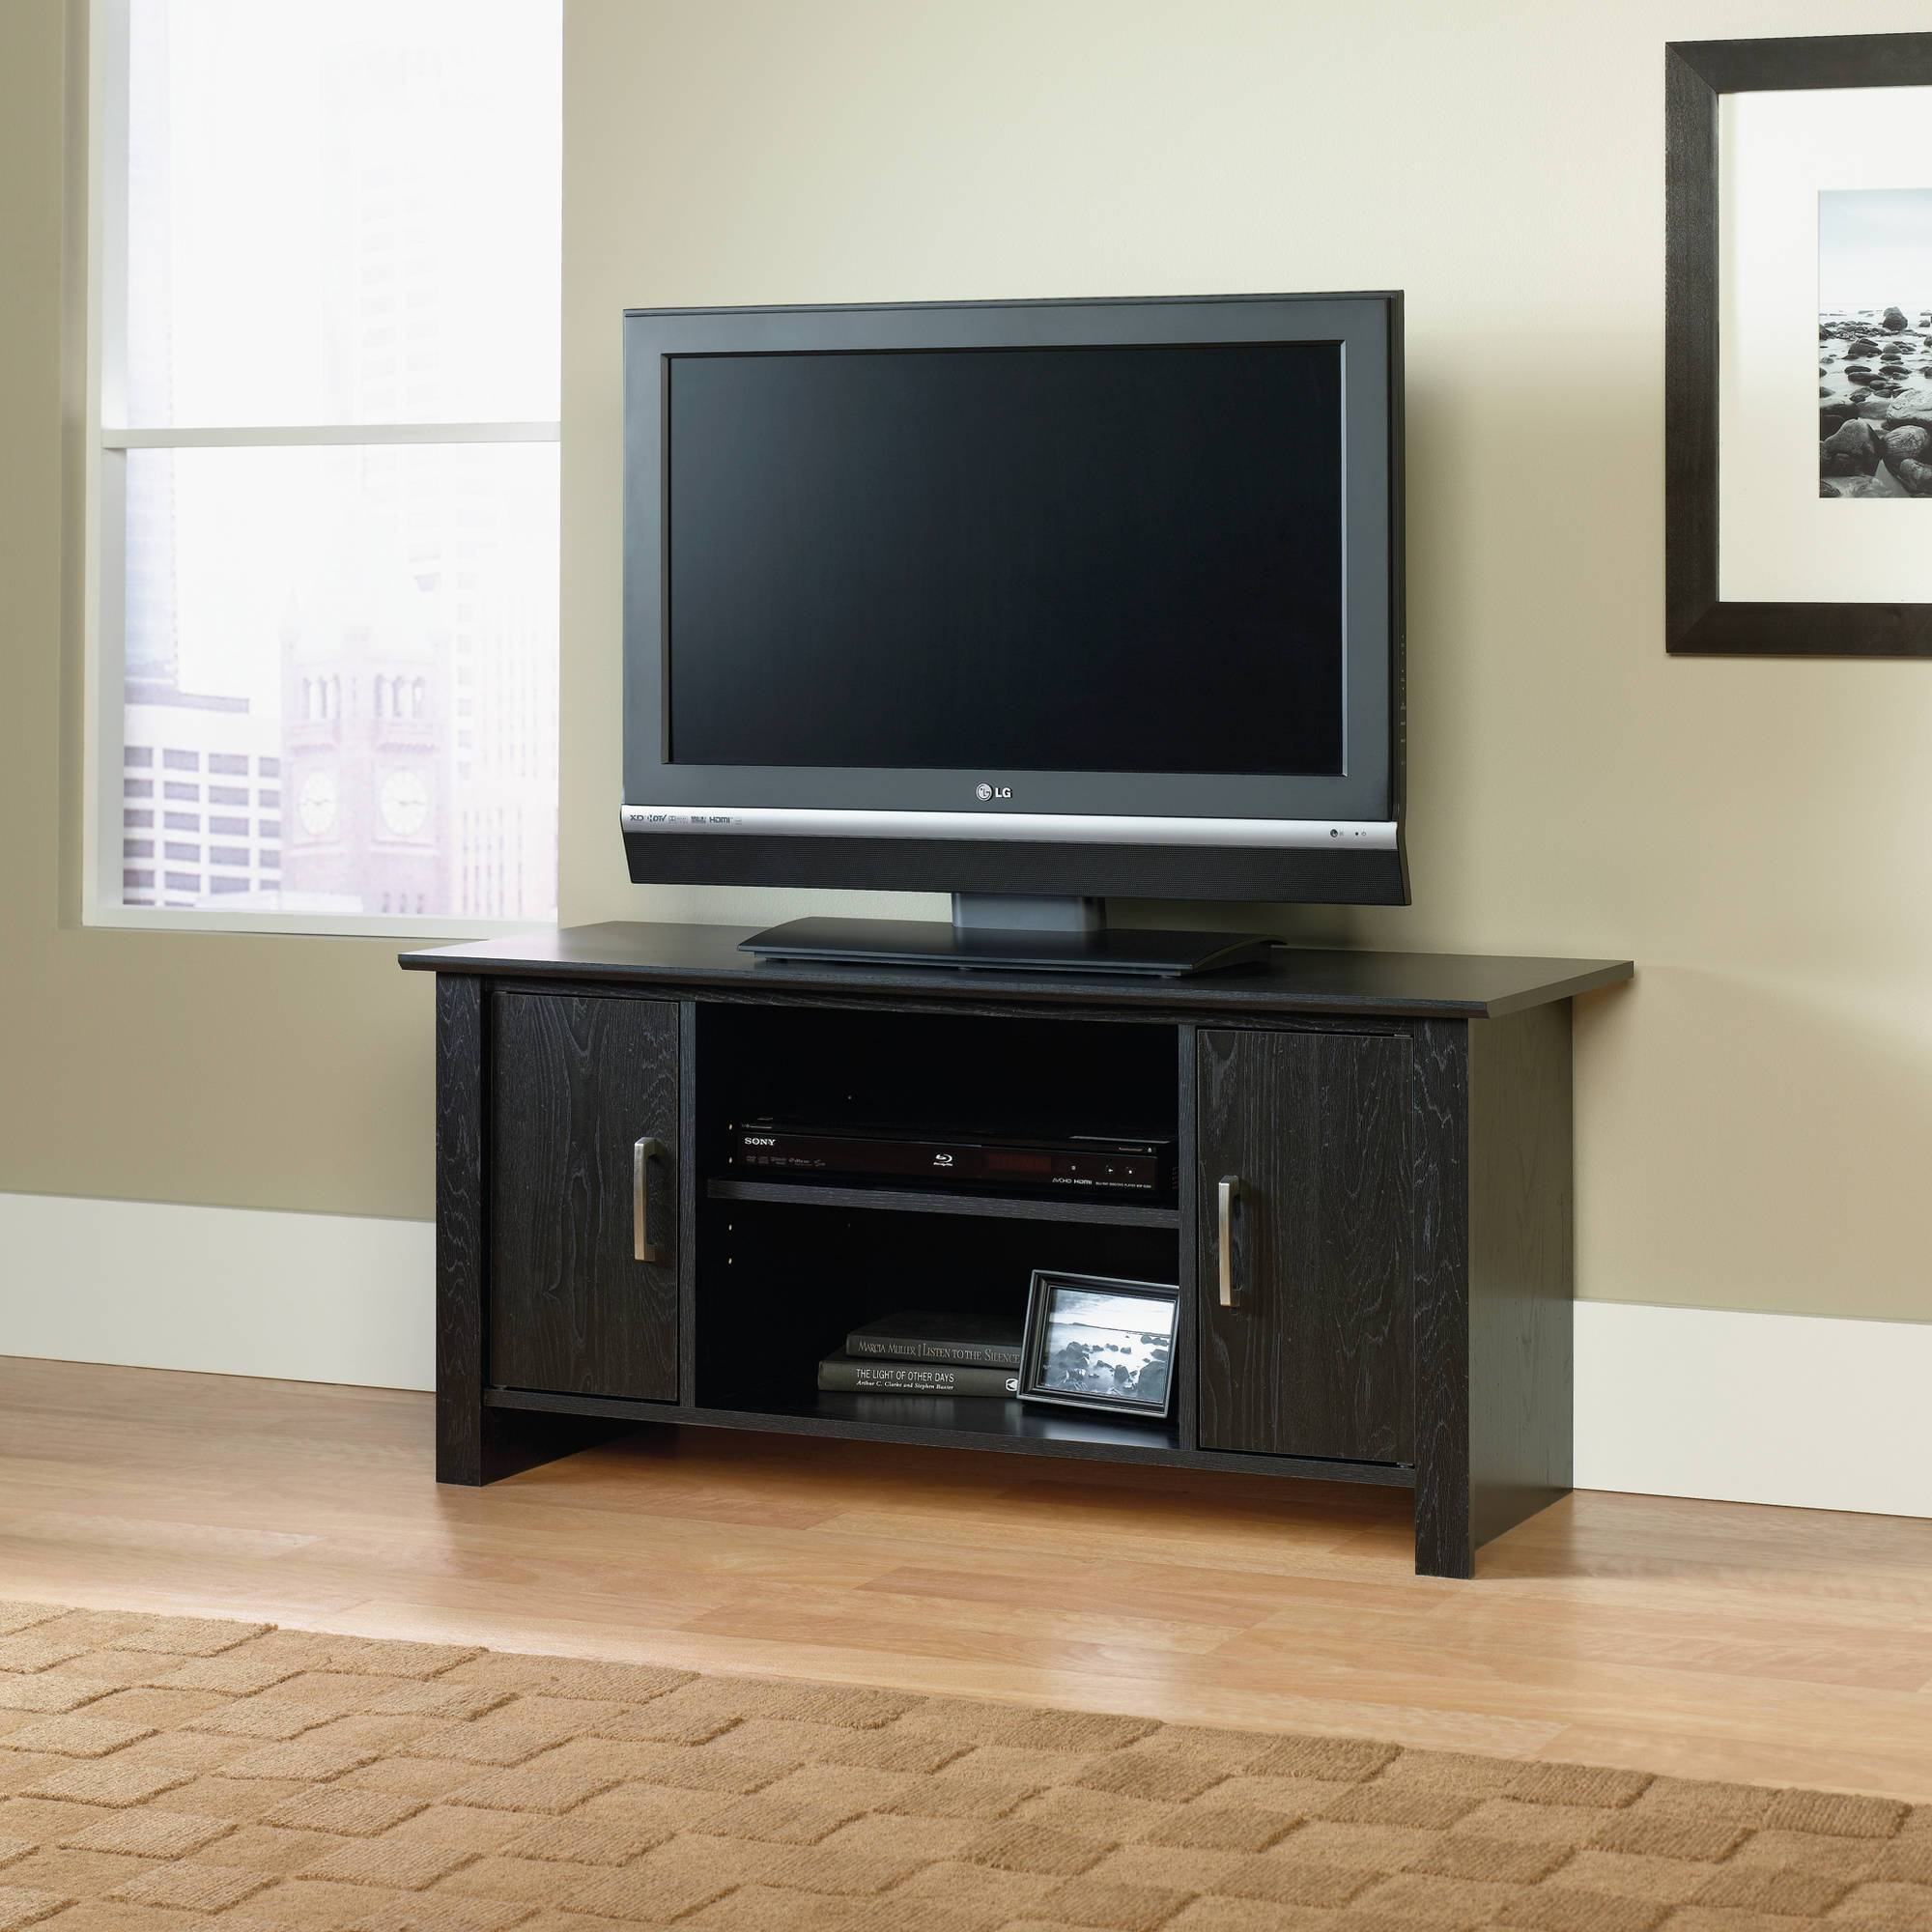 Tv Stands & Entertainment Centers - Walmart inside Wood Tv Entertainment Stands (Image 12 of 15)